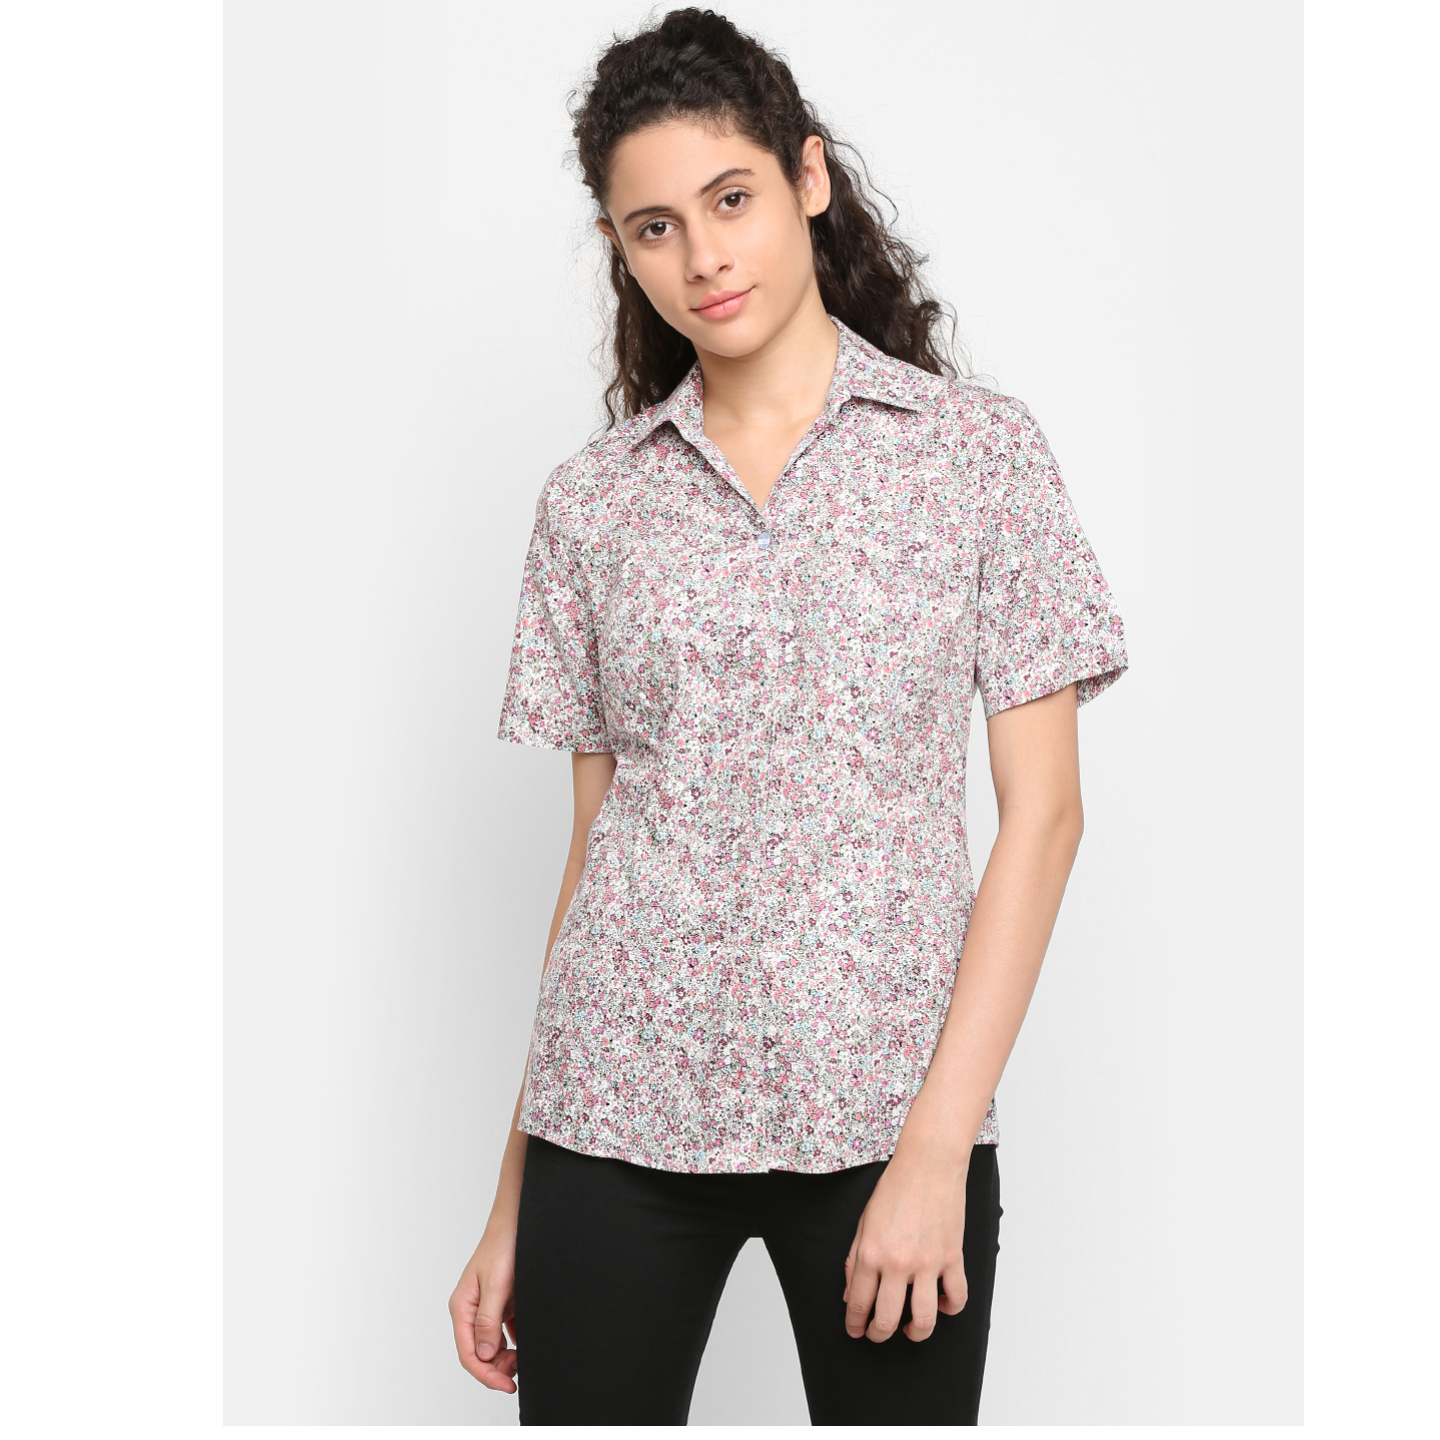 Double TWO Womens Pink Floral Print Half Sleeve Shirt